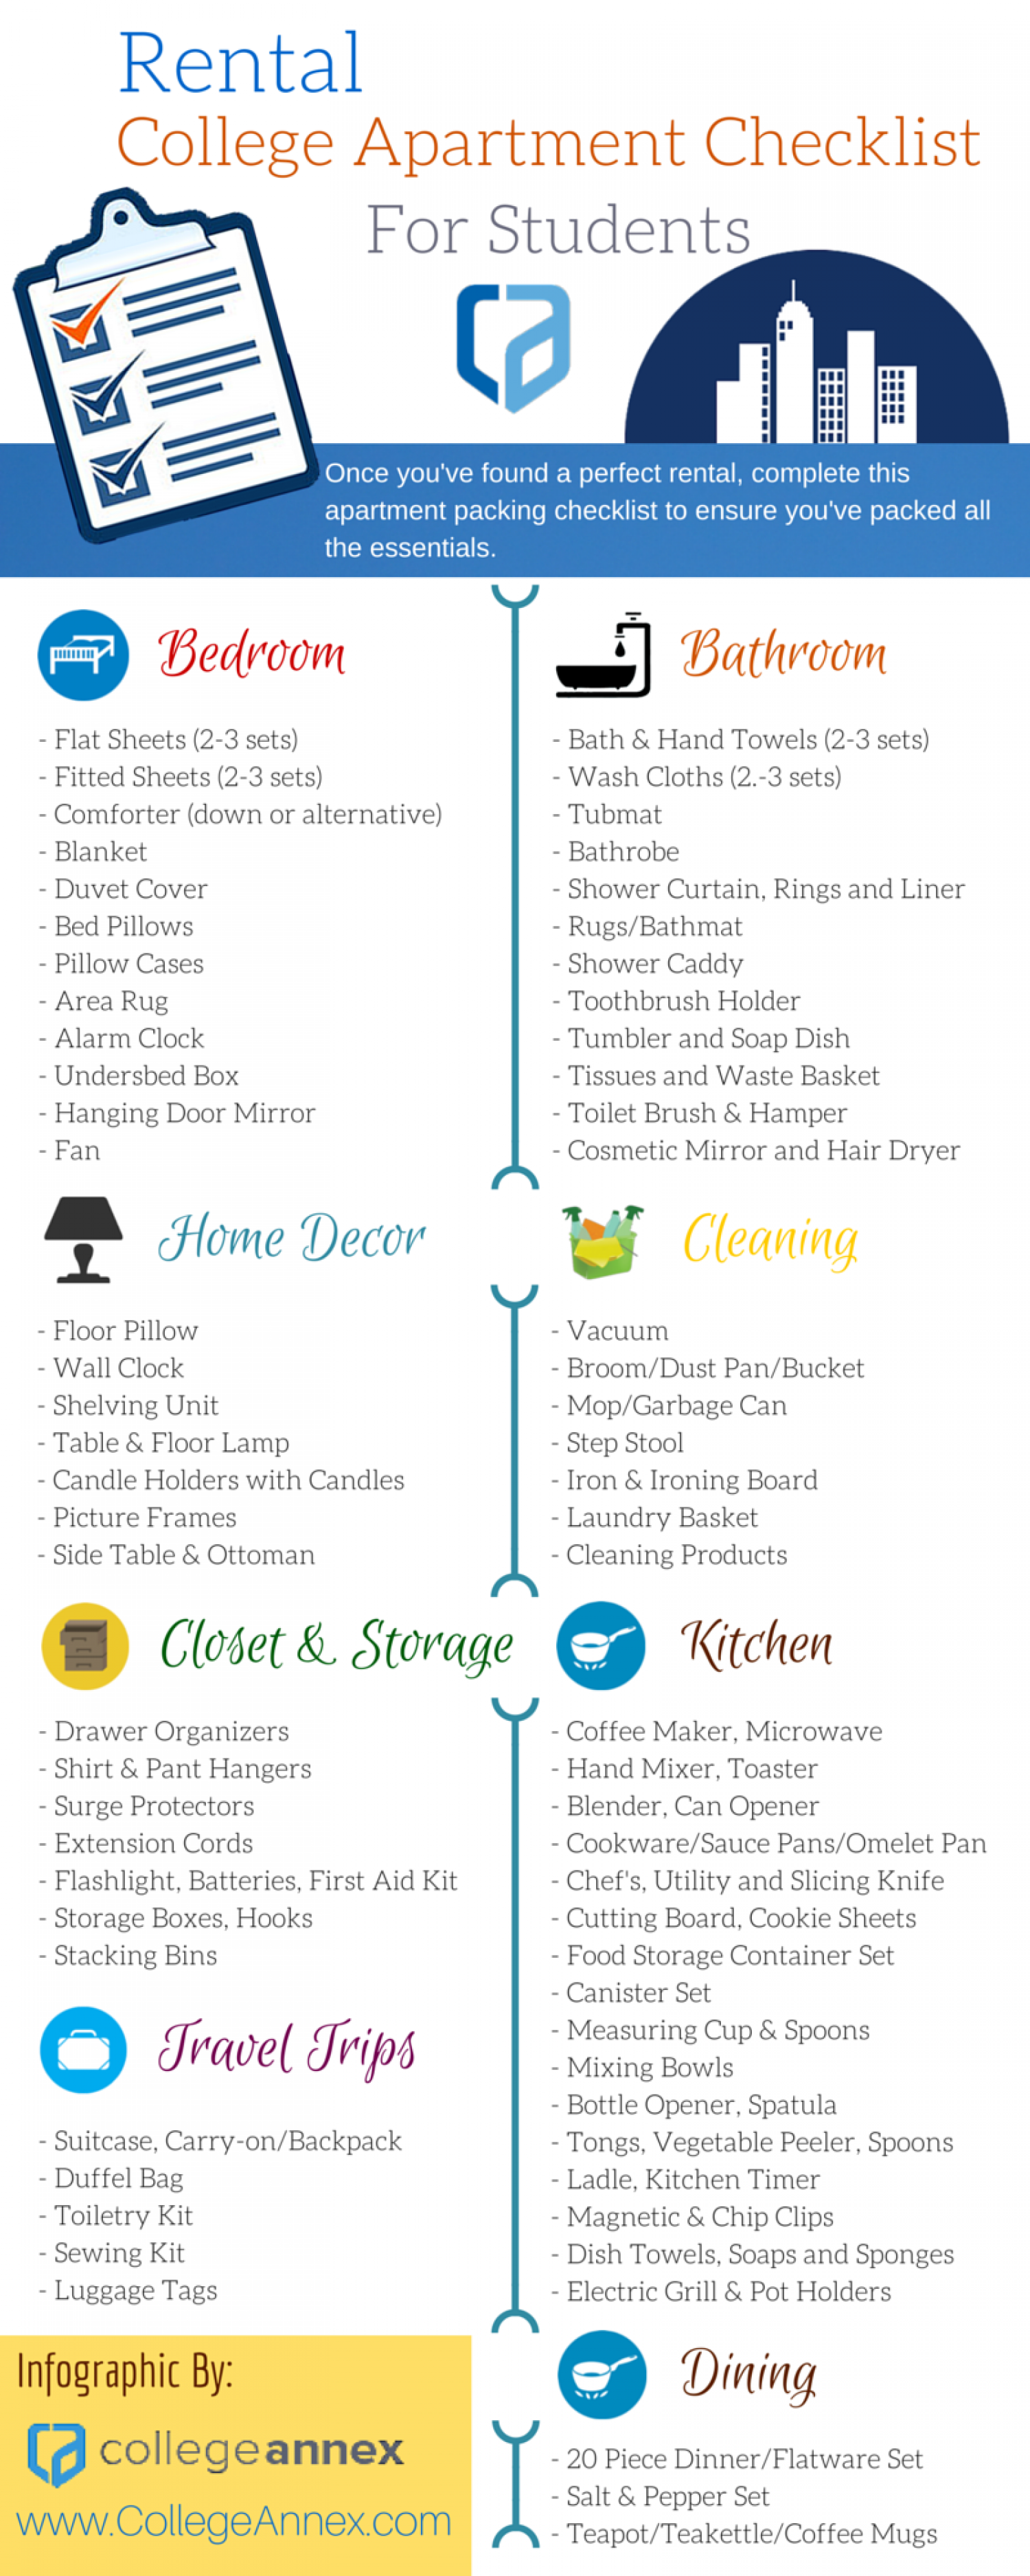 College Apartment Checklist For Students Infographic | College ...